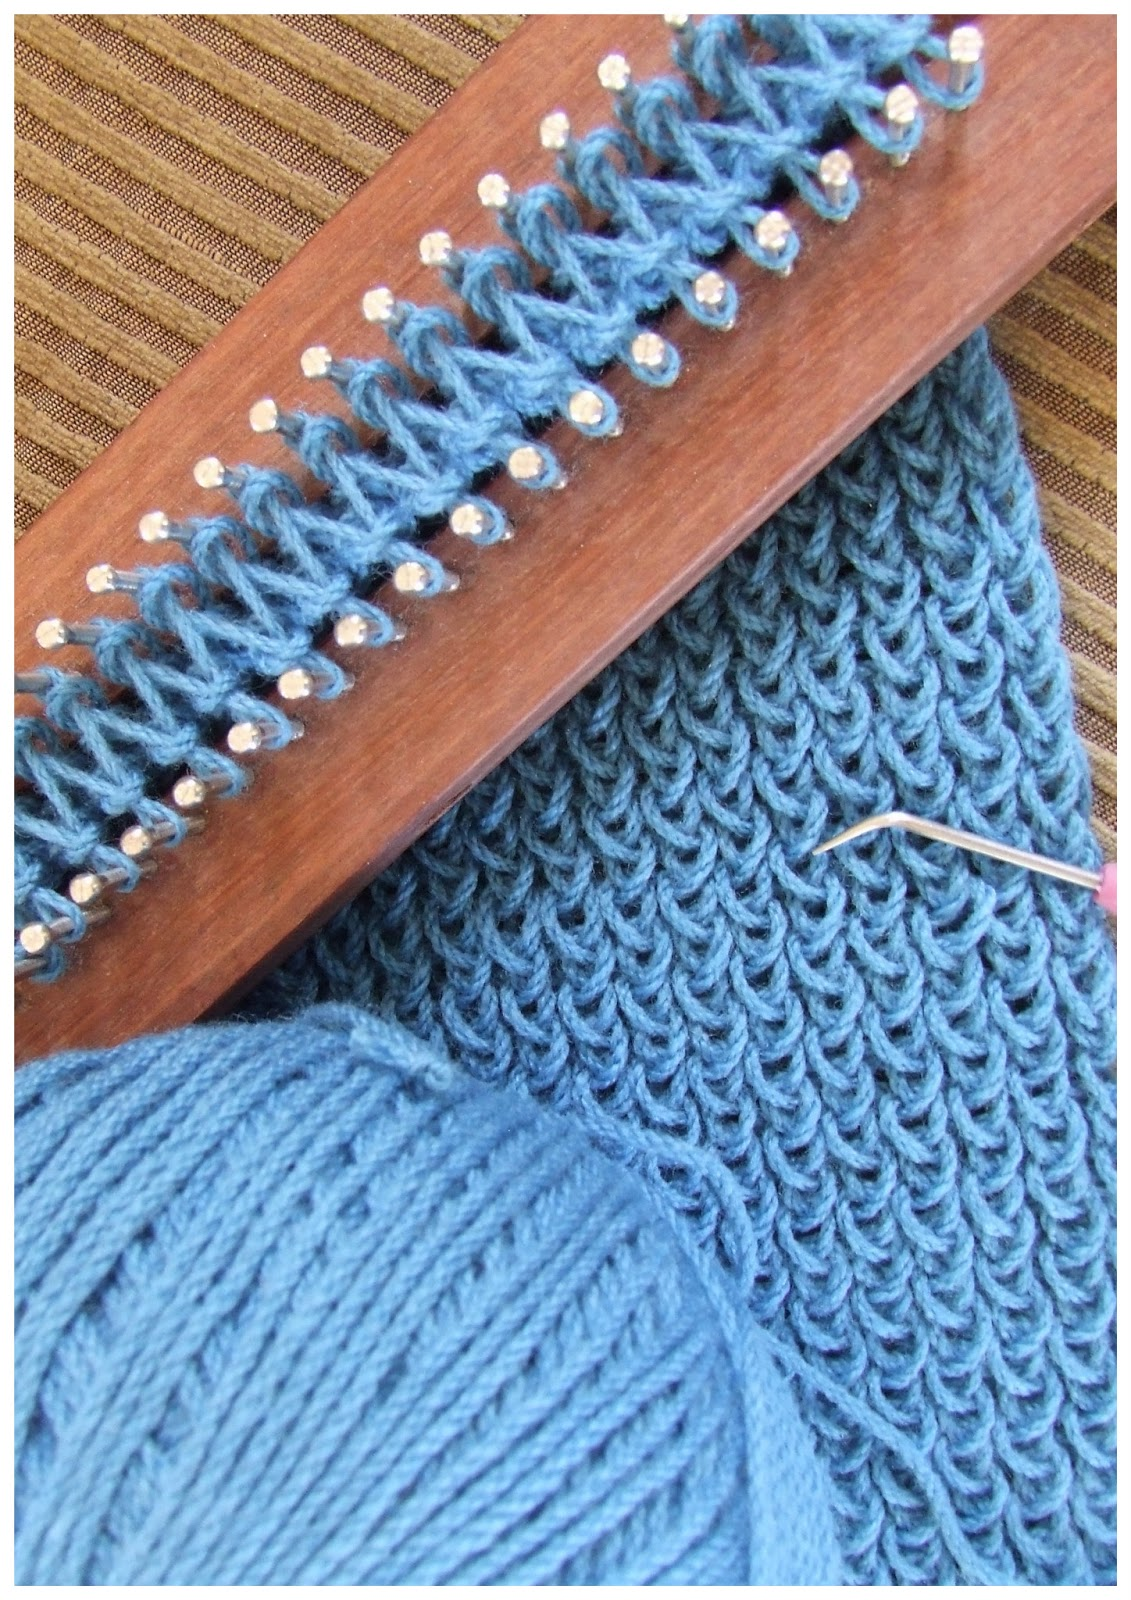 Patterns For Knitting Looms : FitzBirch Crafts: Loom Knitting